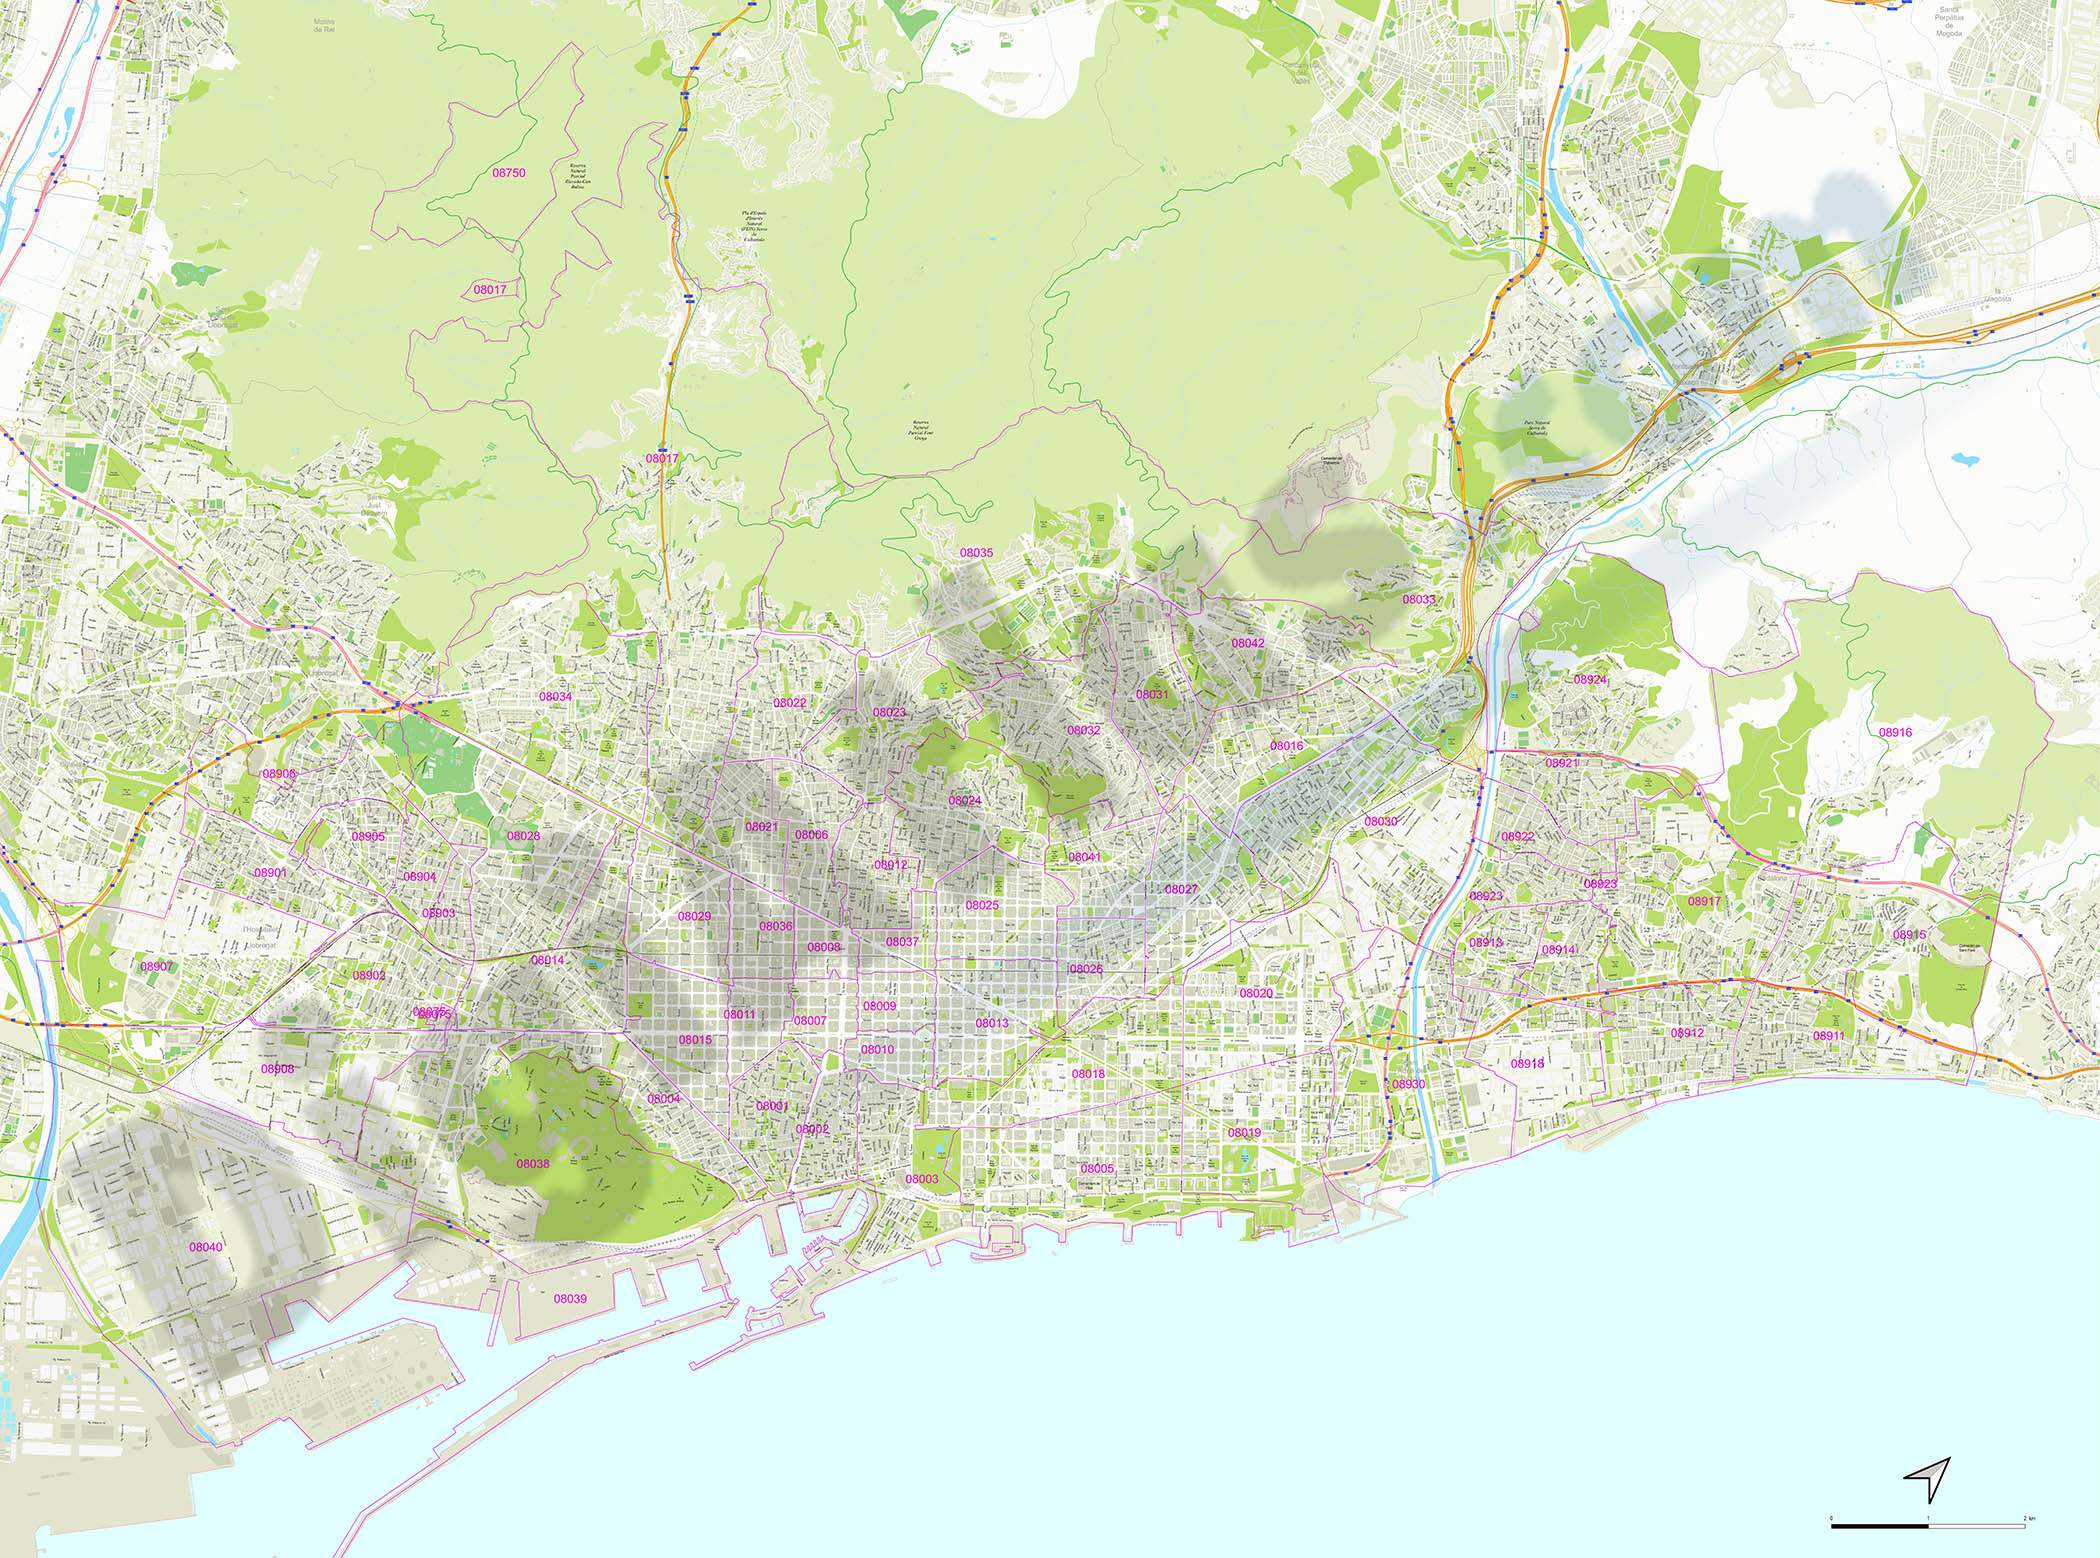 Barcelona and surroundings with postal codes